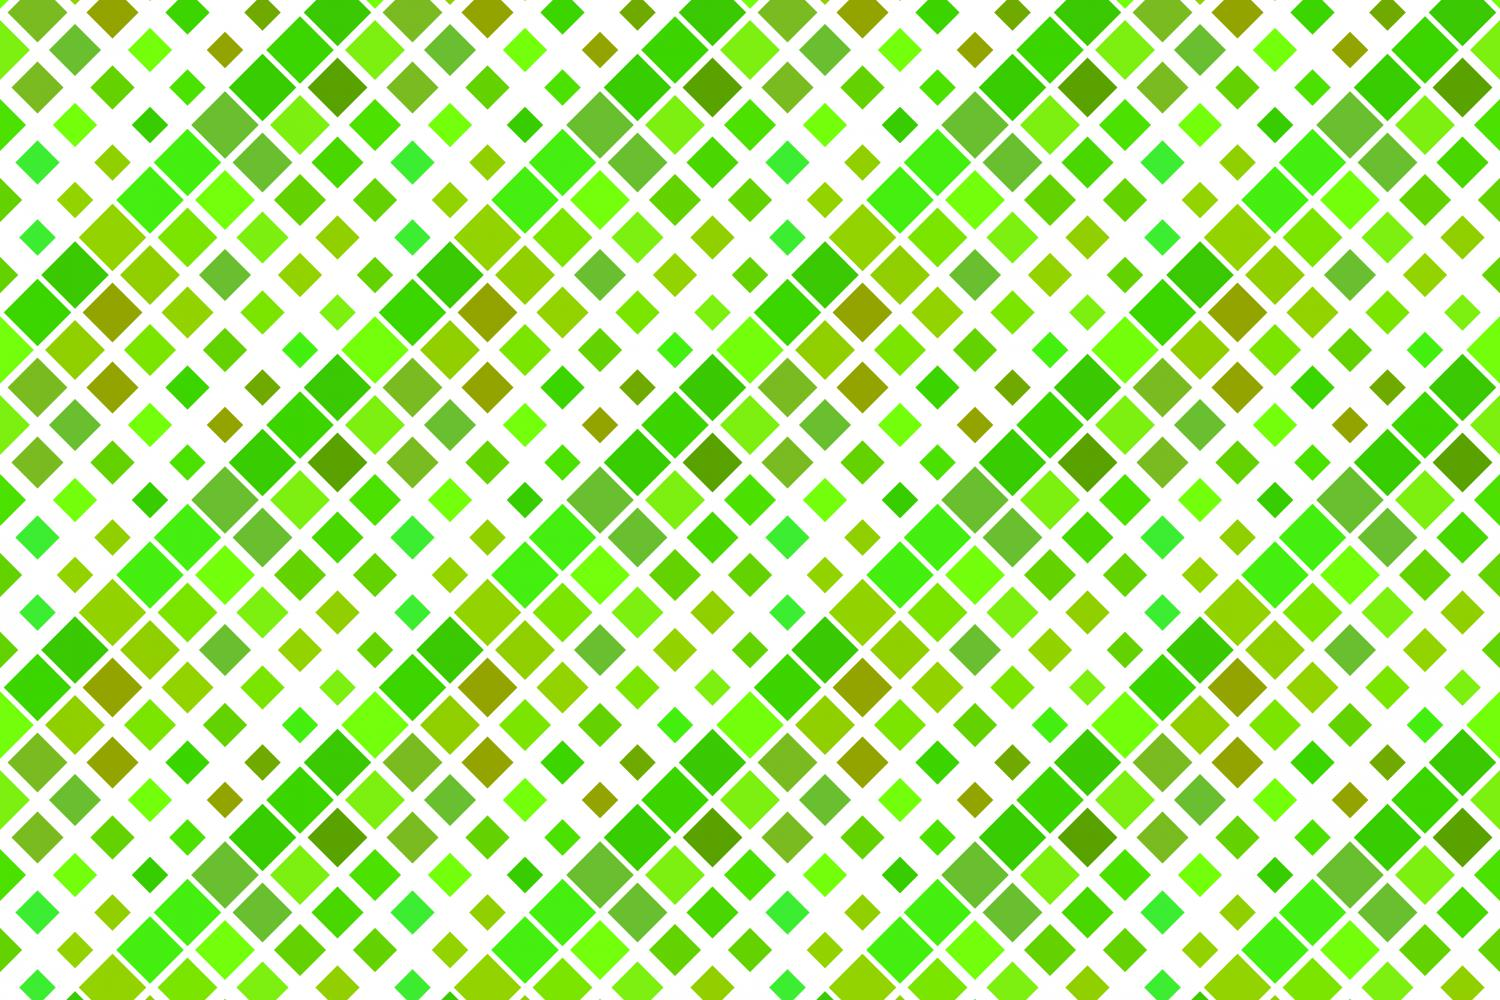 24 Seamless Green Square Patterns example image 7